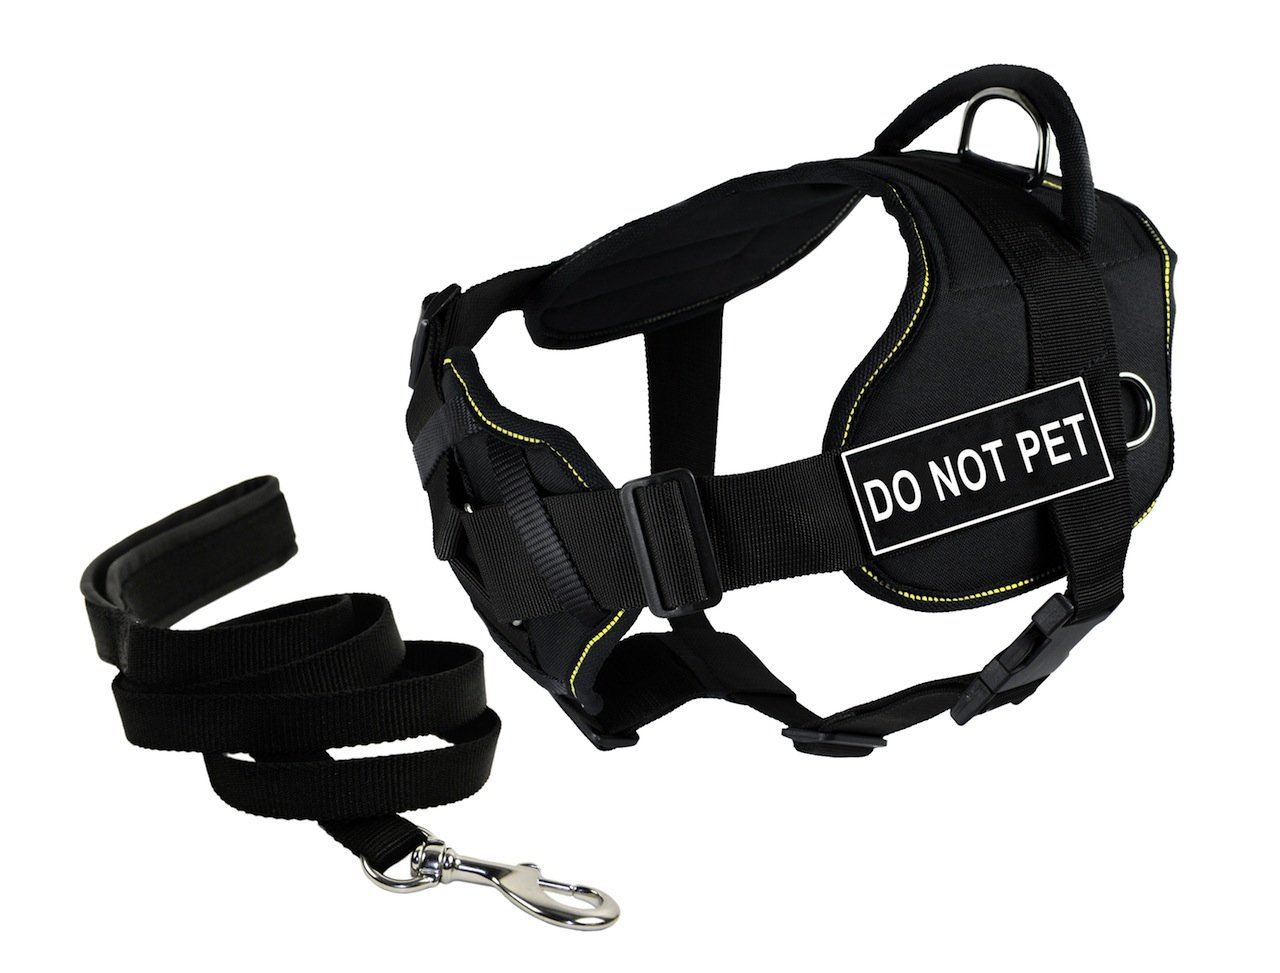 Dean & Tyler Bundle of 28 to 34-Inch DT Fun Harness with Chest Support and 6-Feet Stainless Snap Padded Puppy Leash, Do Not Pet, Black with Yellow Trim